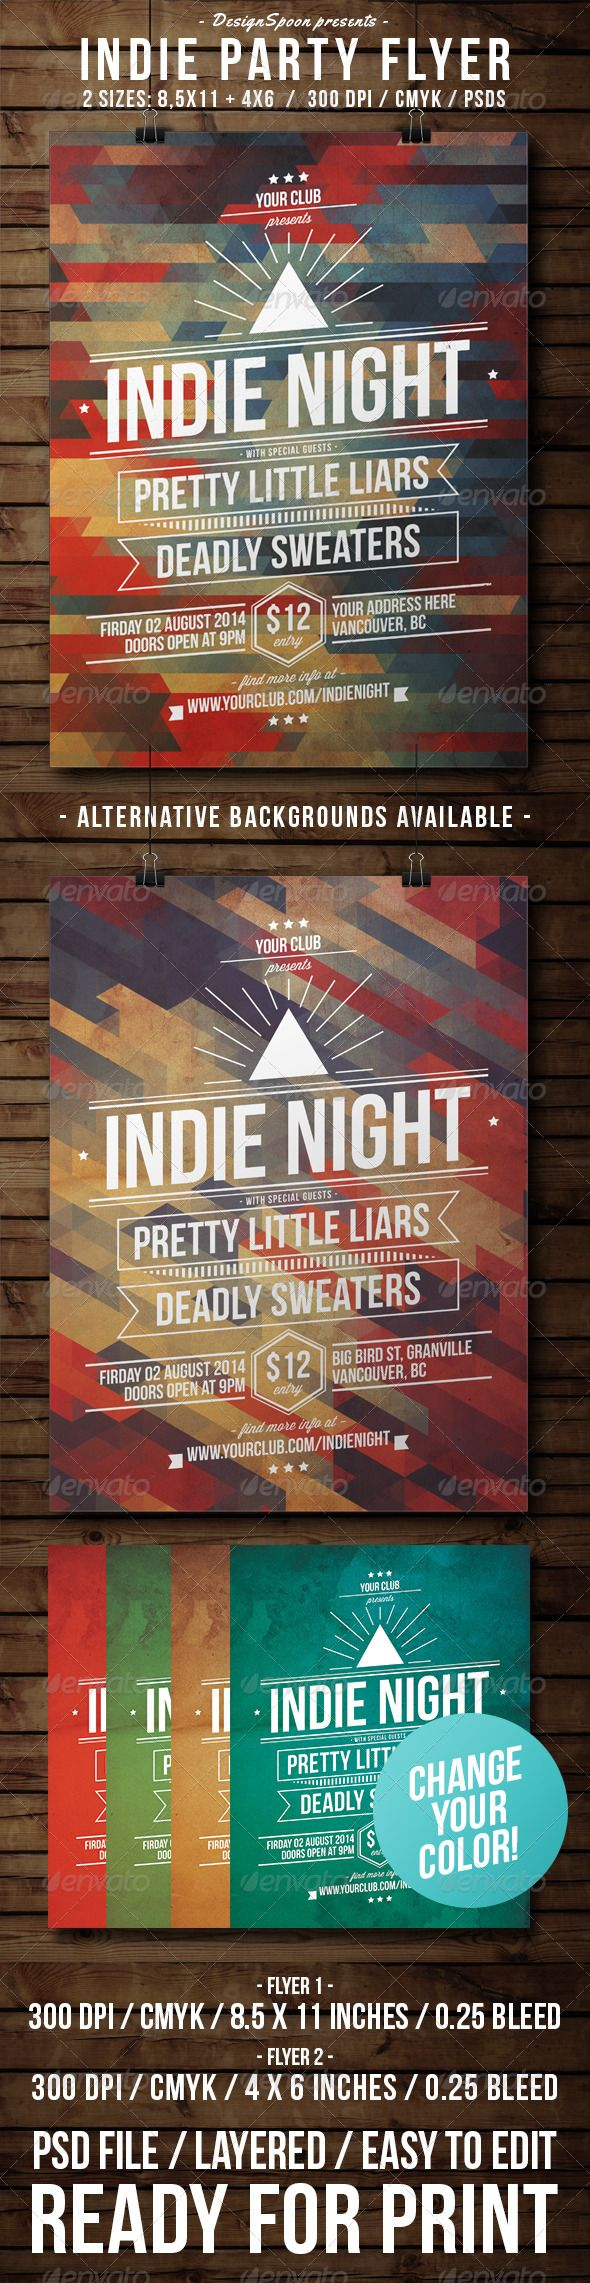 Indie Party Flyer Template PSD | Buy and Download…